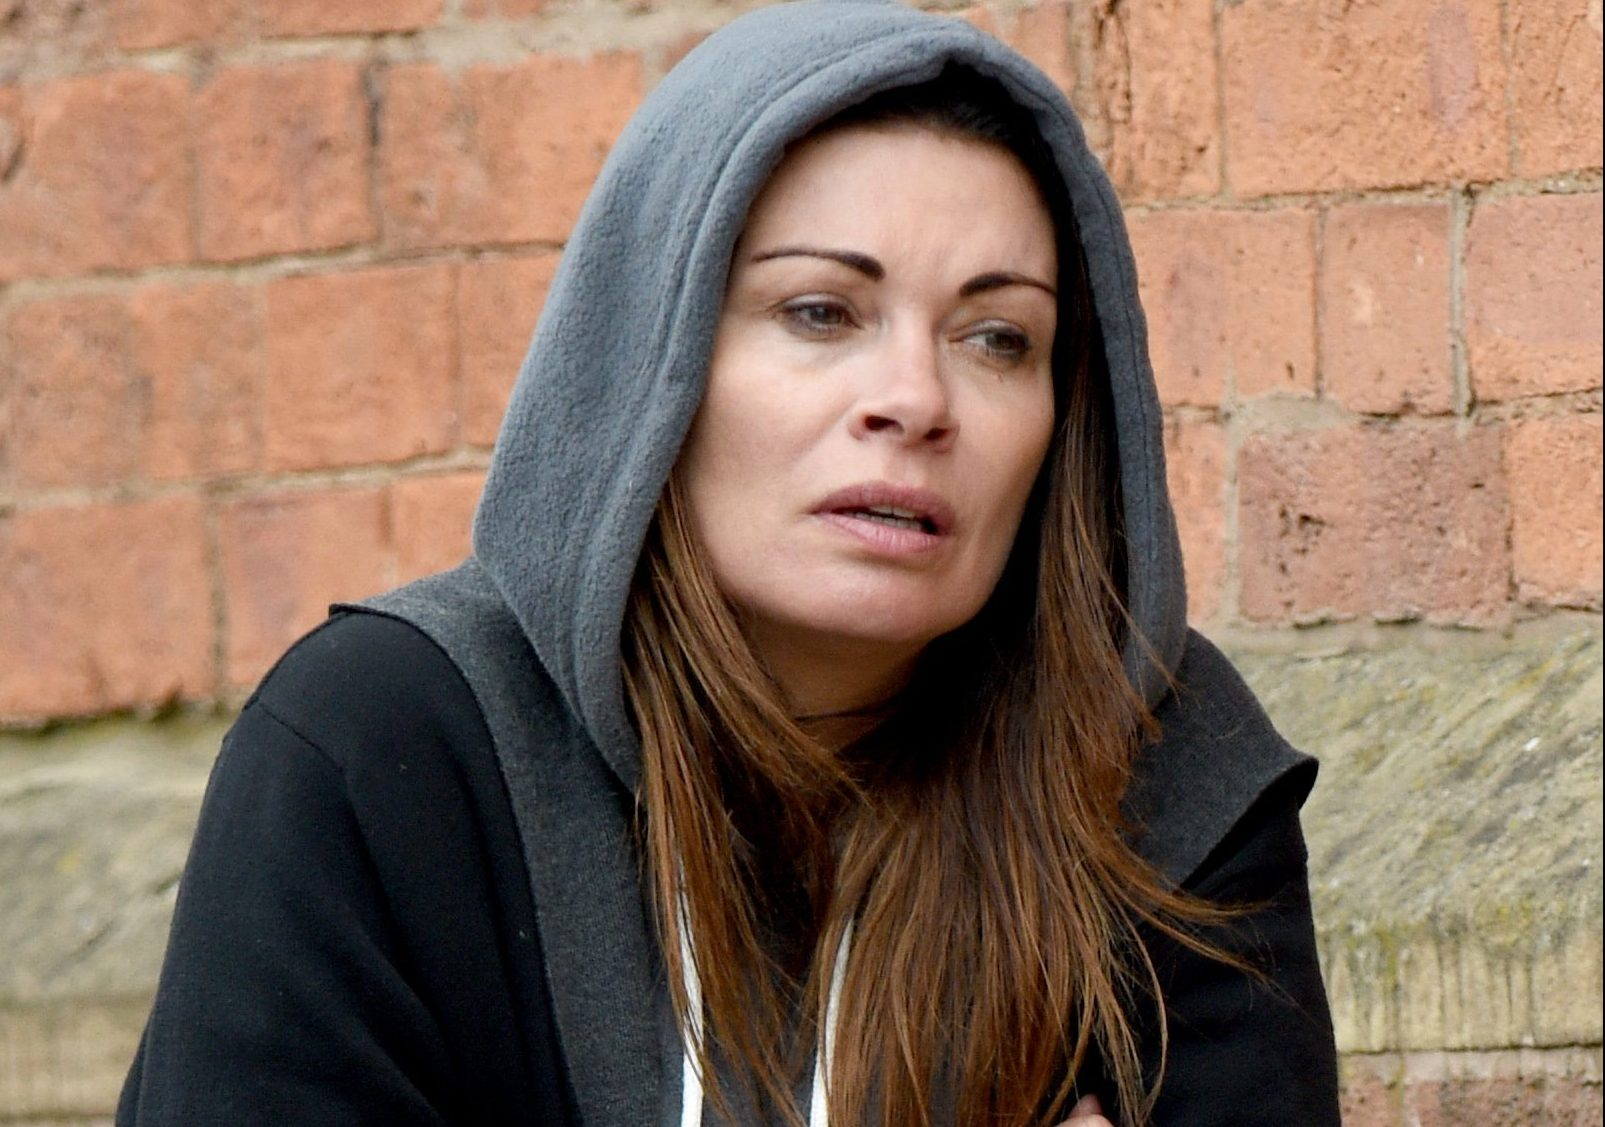 Coronation Street spoilers: Roy Cropper saves Carla Connor in her darkest hour